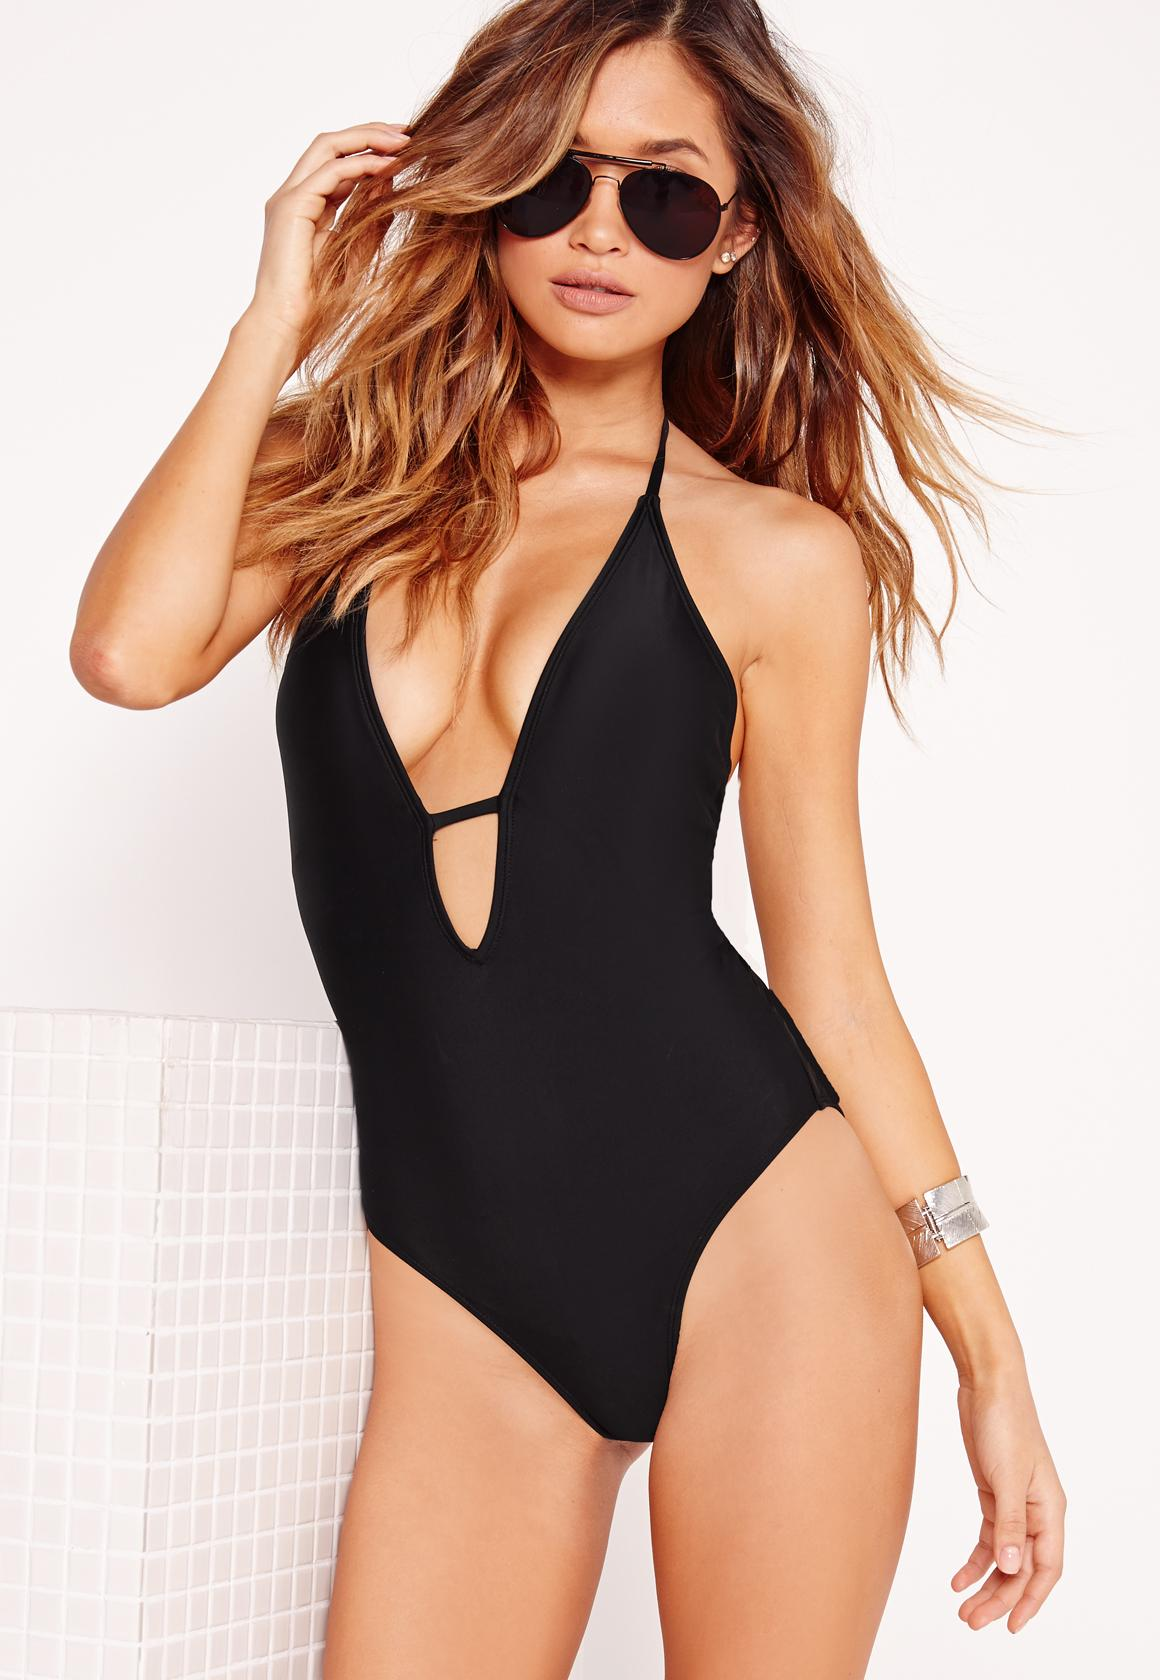 Black swimsuit is a vital piece of your mid-year closet